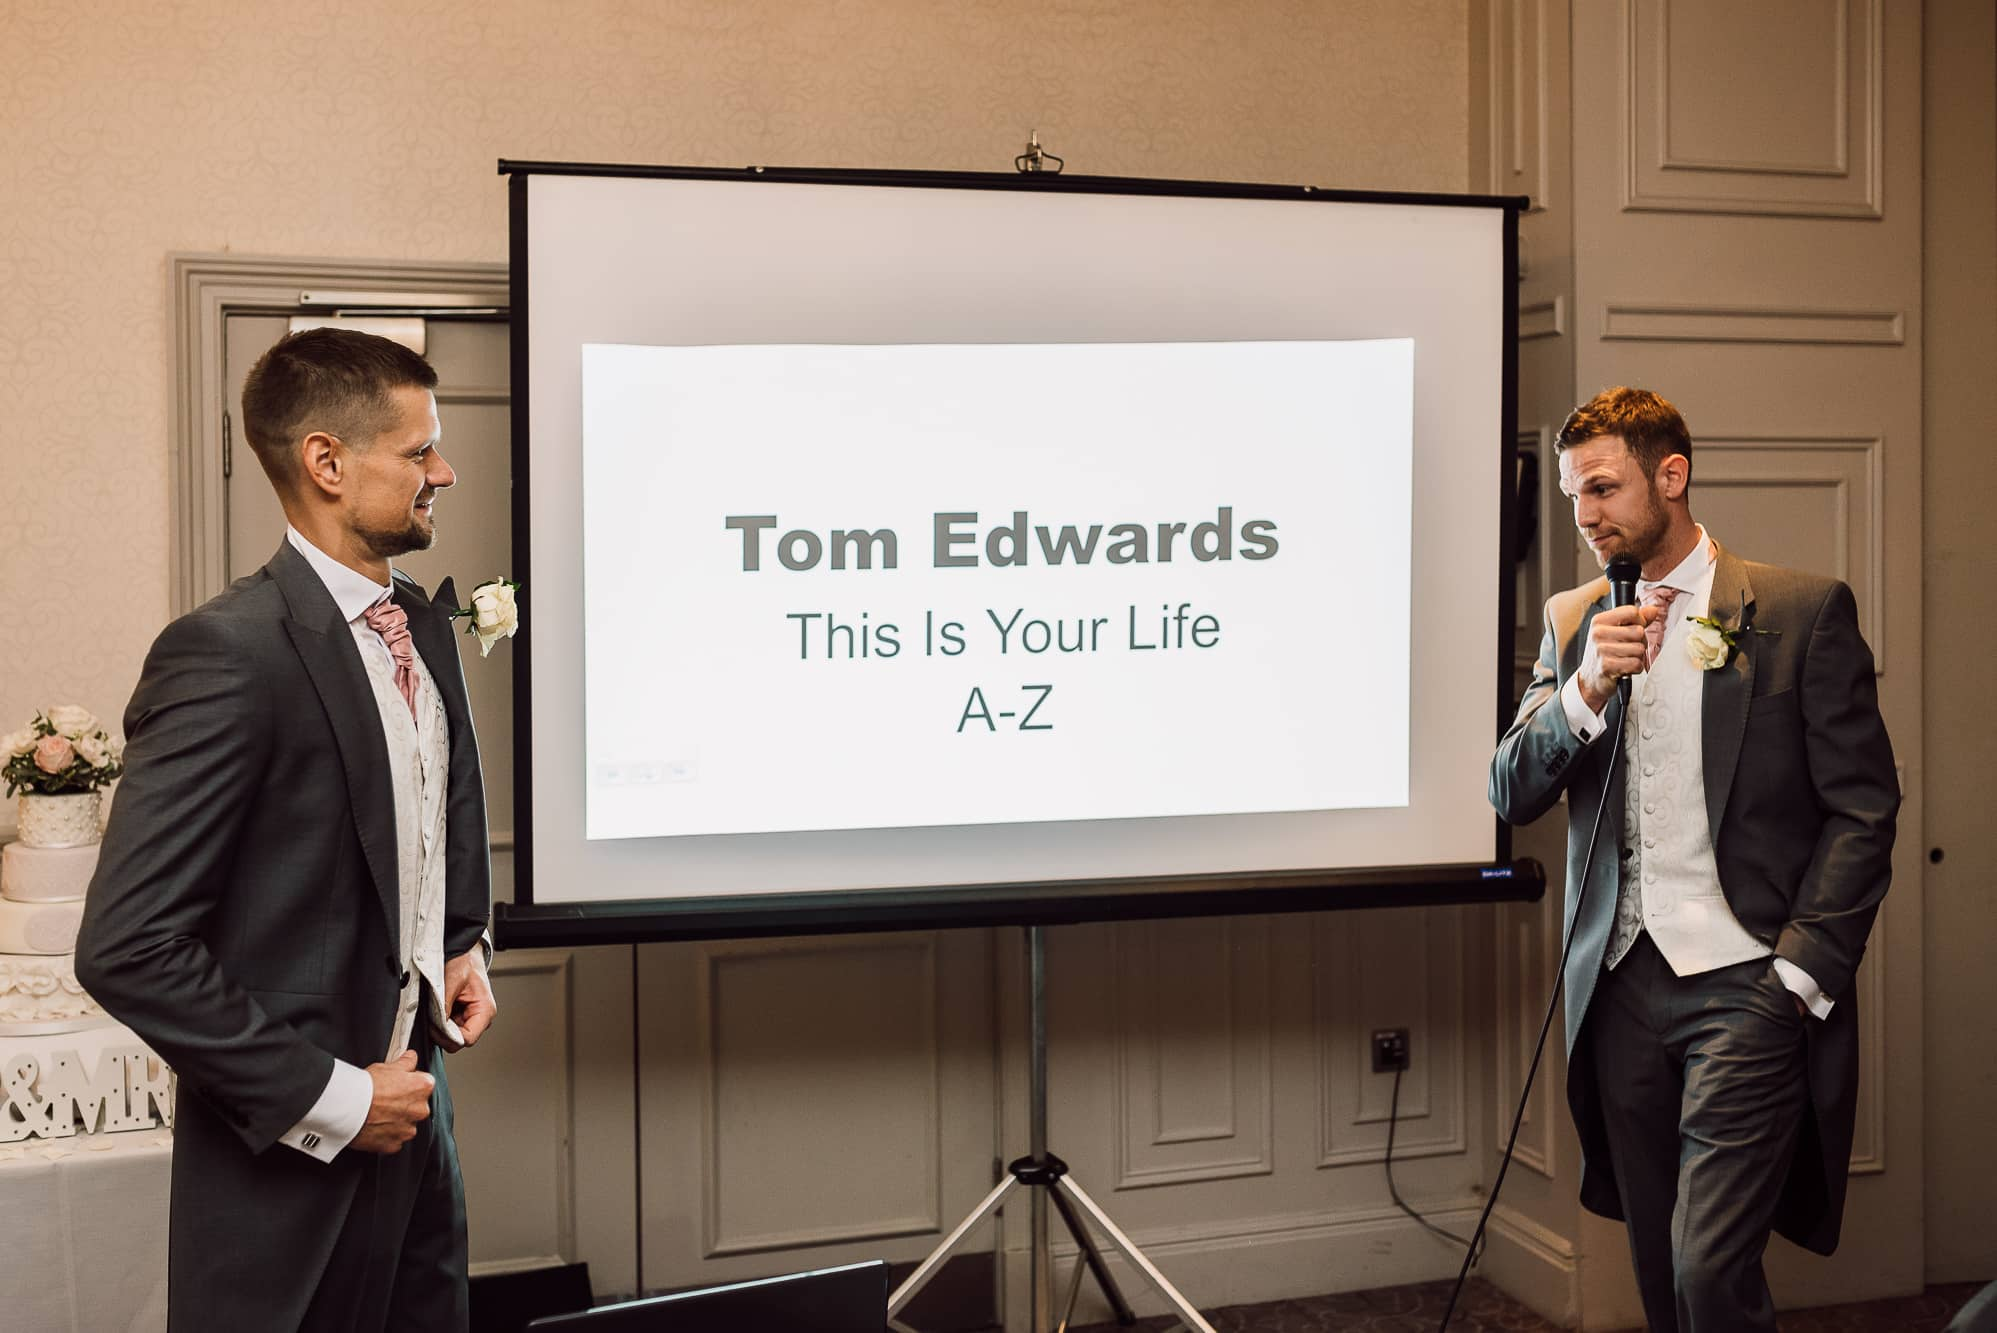 This is your life speech at Mottram Hall